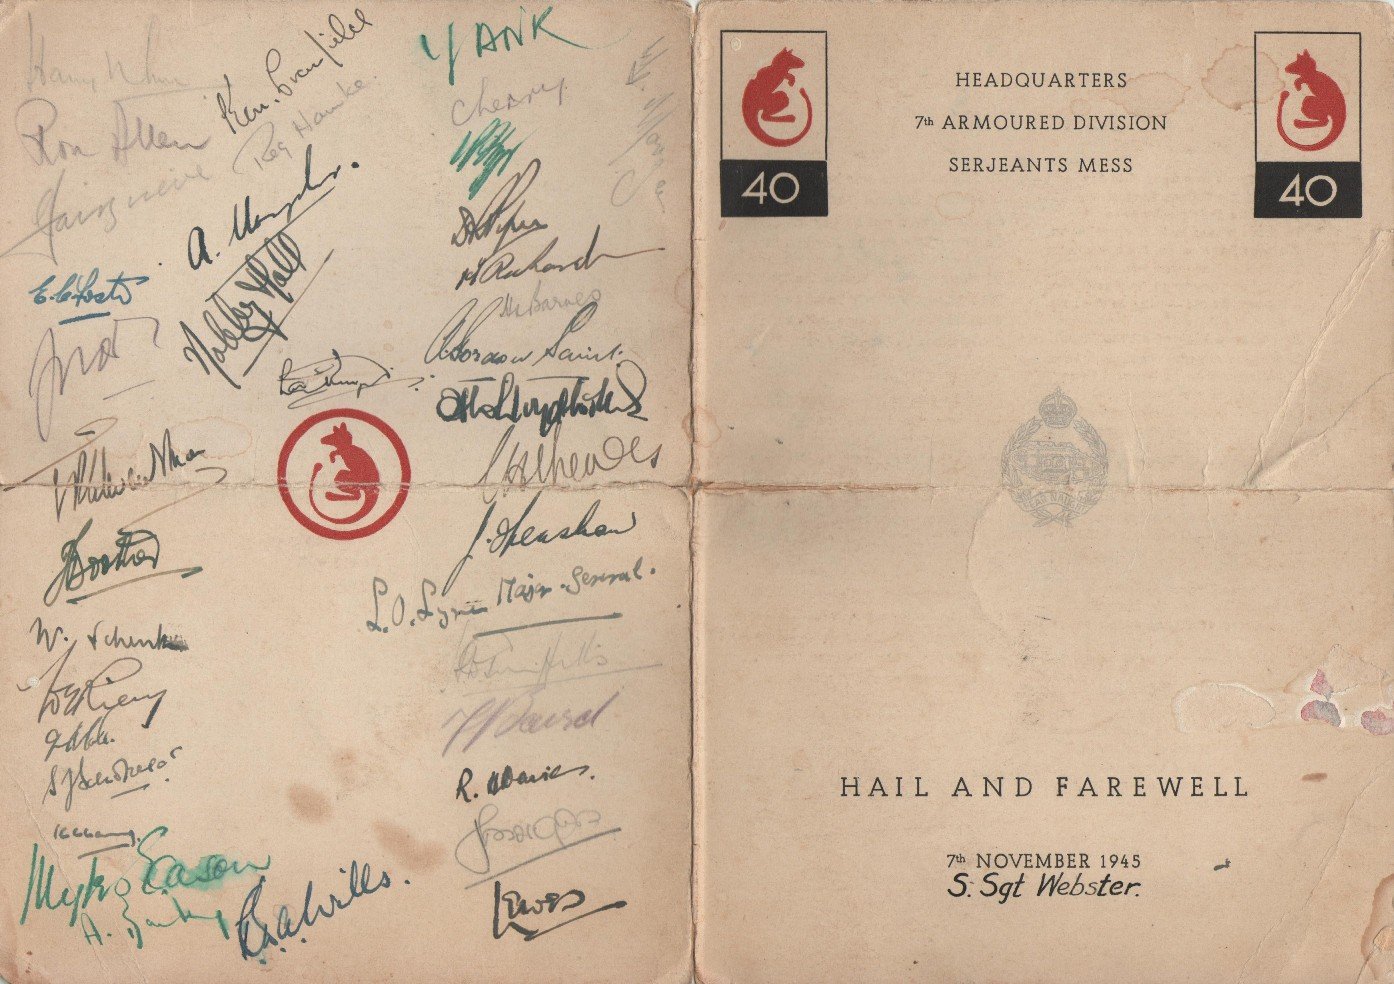 Menu card is signed by all there including the Divisional Commander Major-General Lyne.